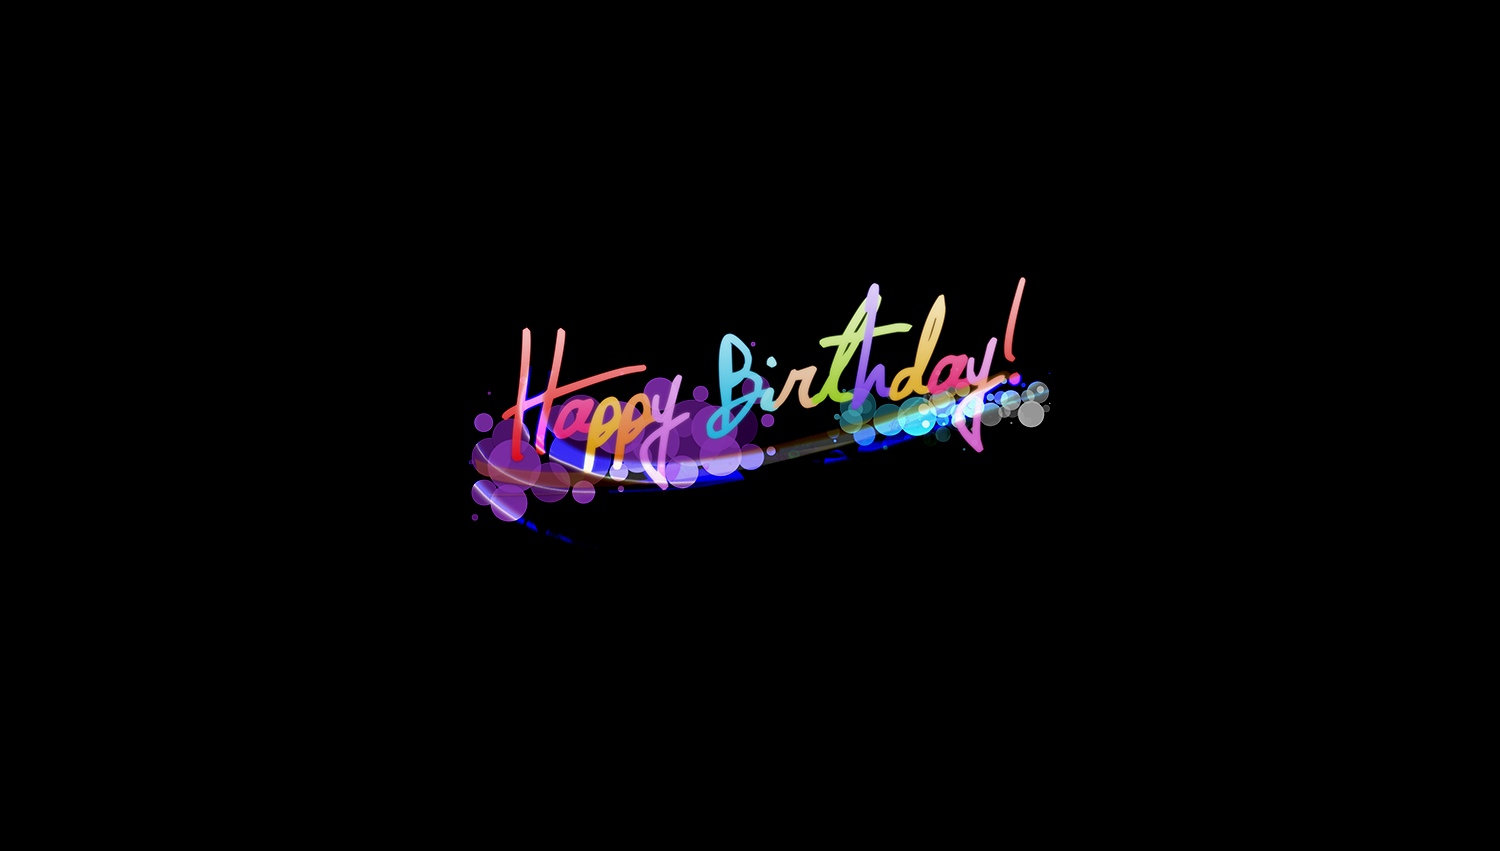 Happy Birthday Wallpapers Download High Definition 1500x851